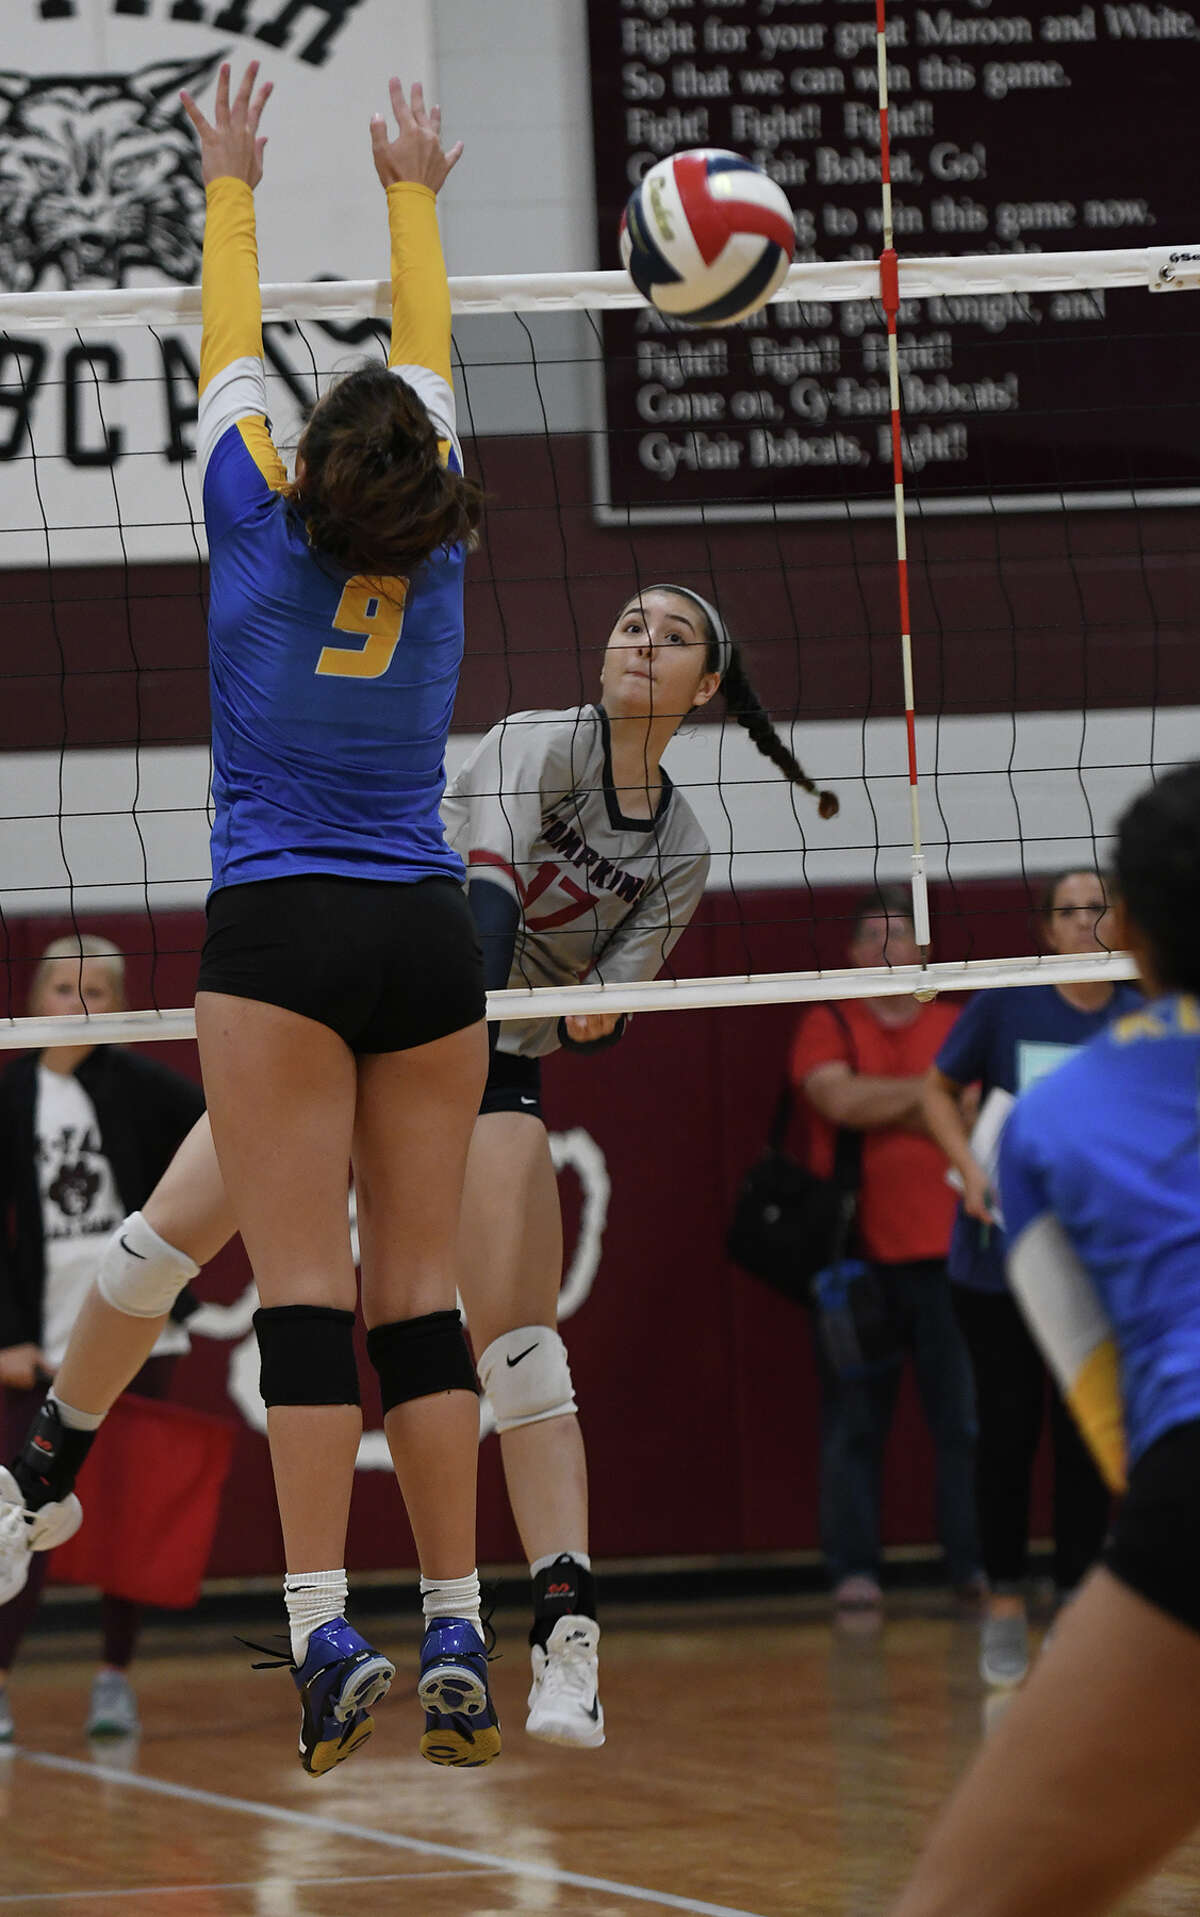 Tompkins junior outside hitter Moyra Zulaica, right, works at the net against Klein senior middle blocker Abby Hinojosa (9) during their match on day three of the John Turner Classic at Cy-Fair High School on Aug. 12, 2017. (Photo by Jerry Baker)